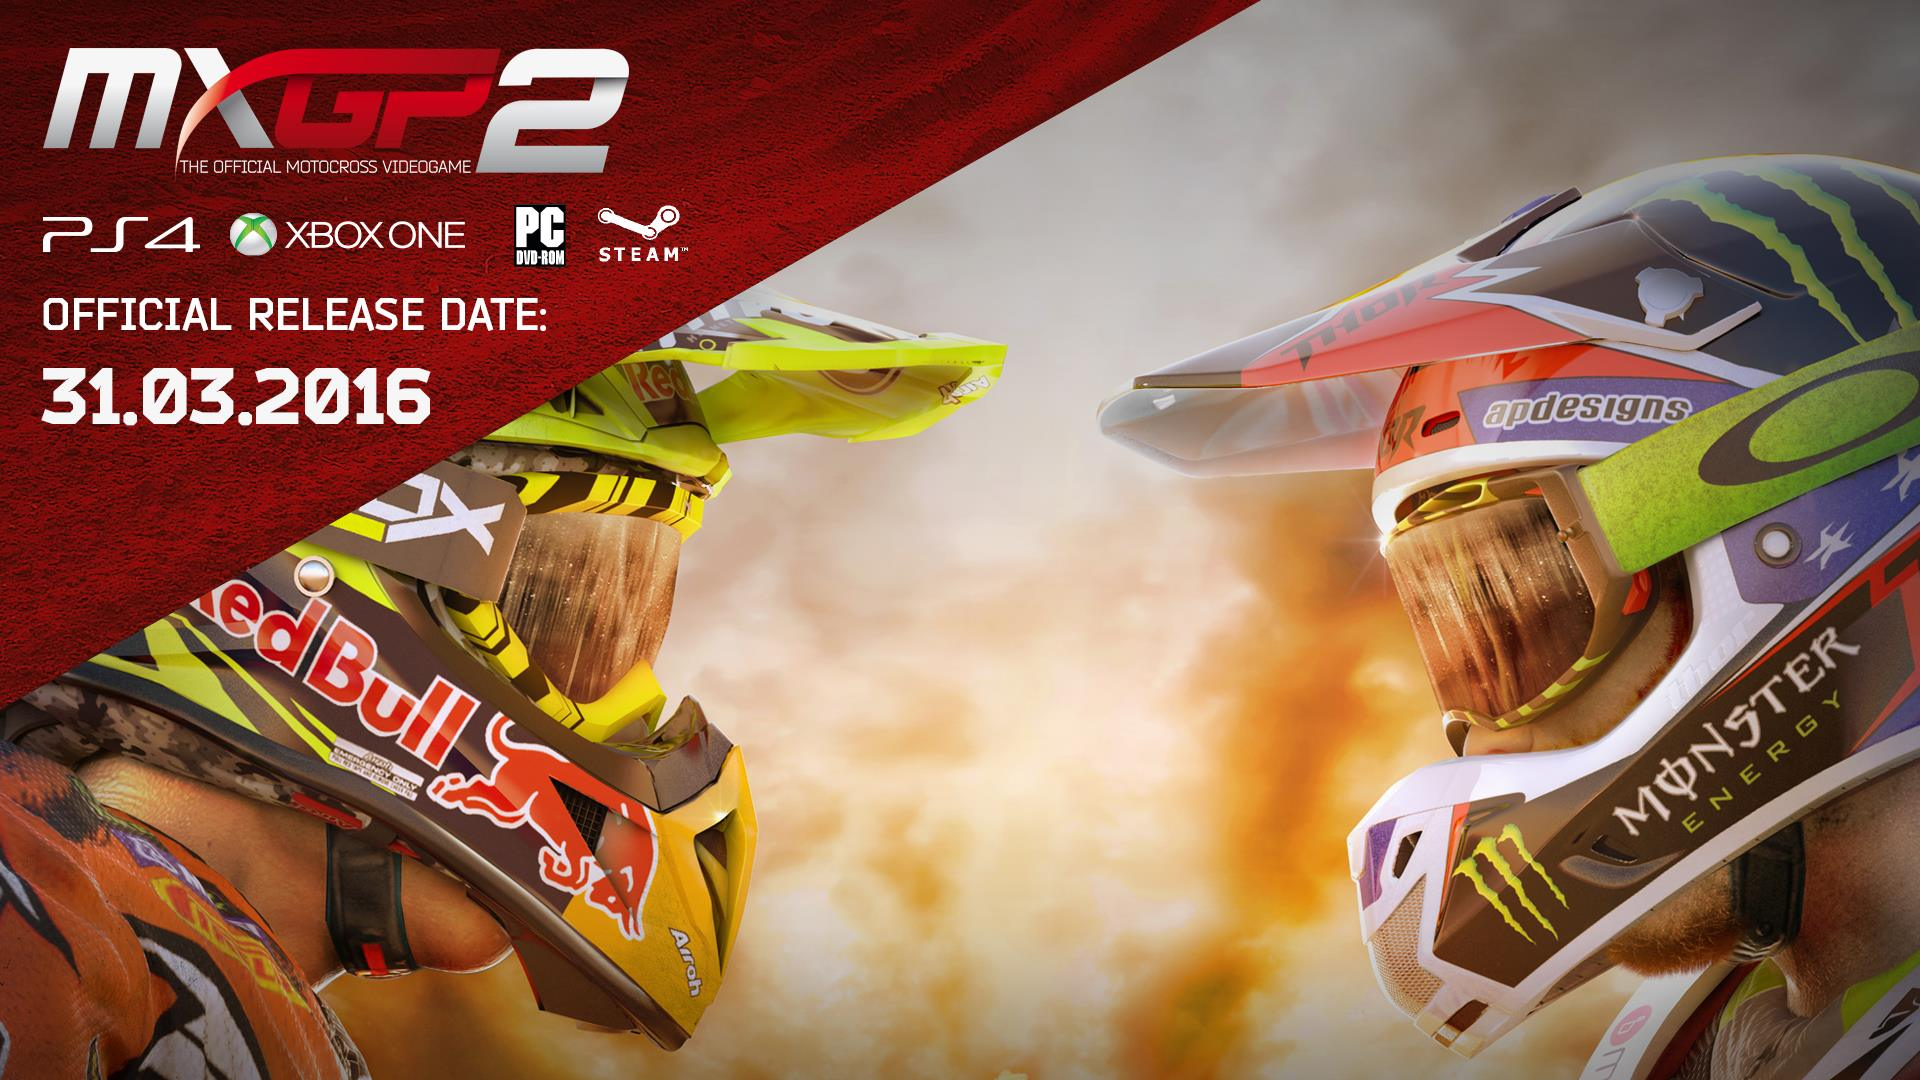 MXGP 2's release date revealed